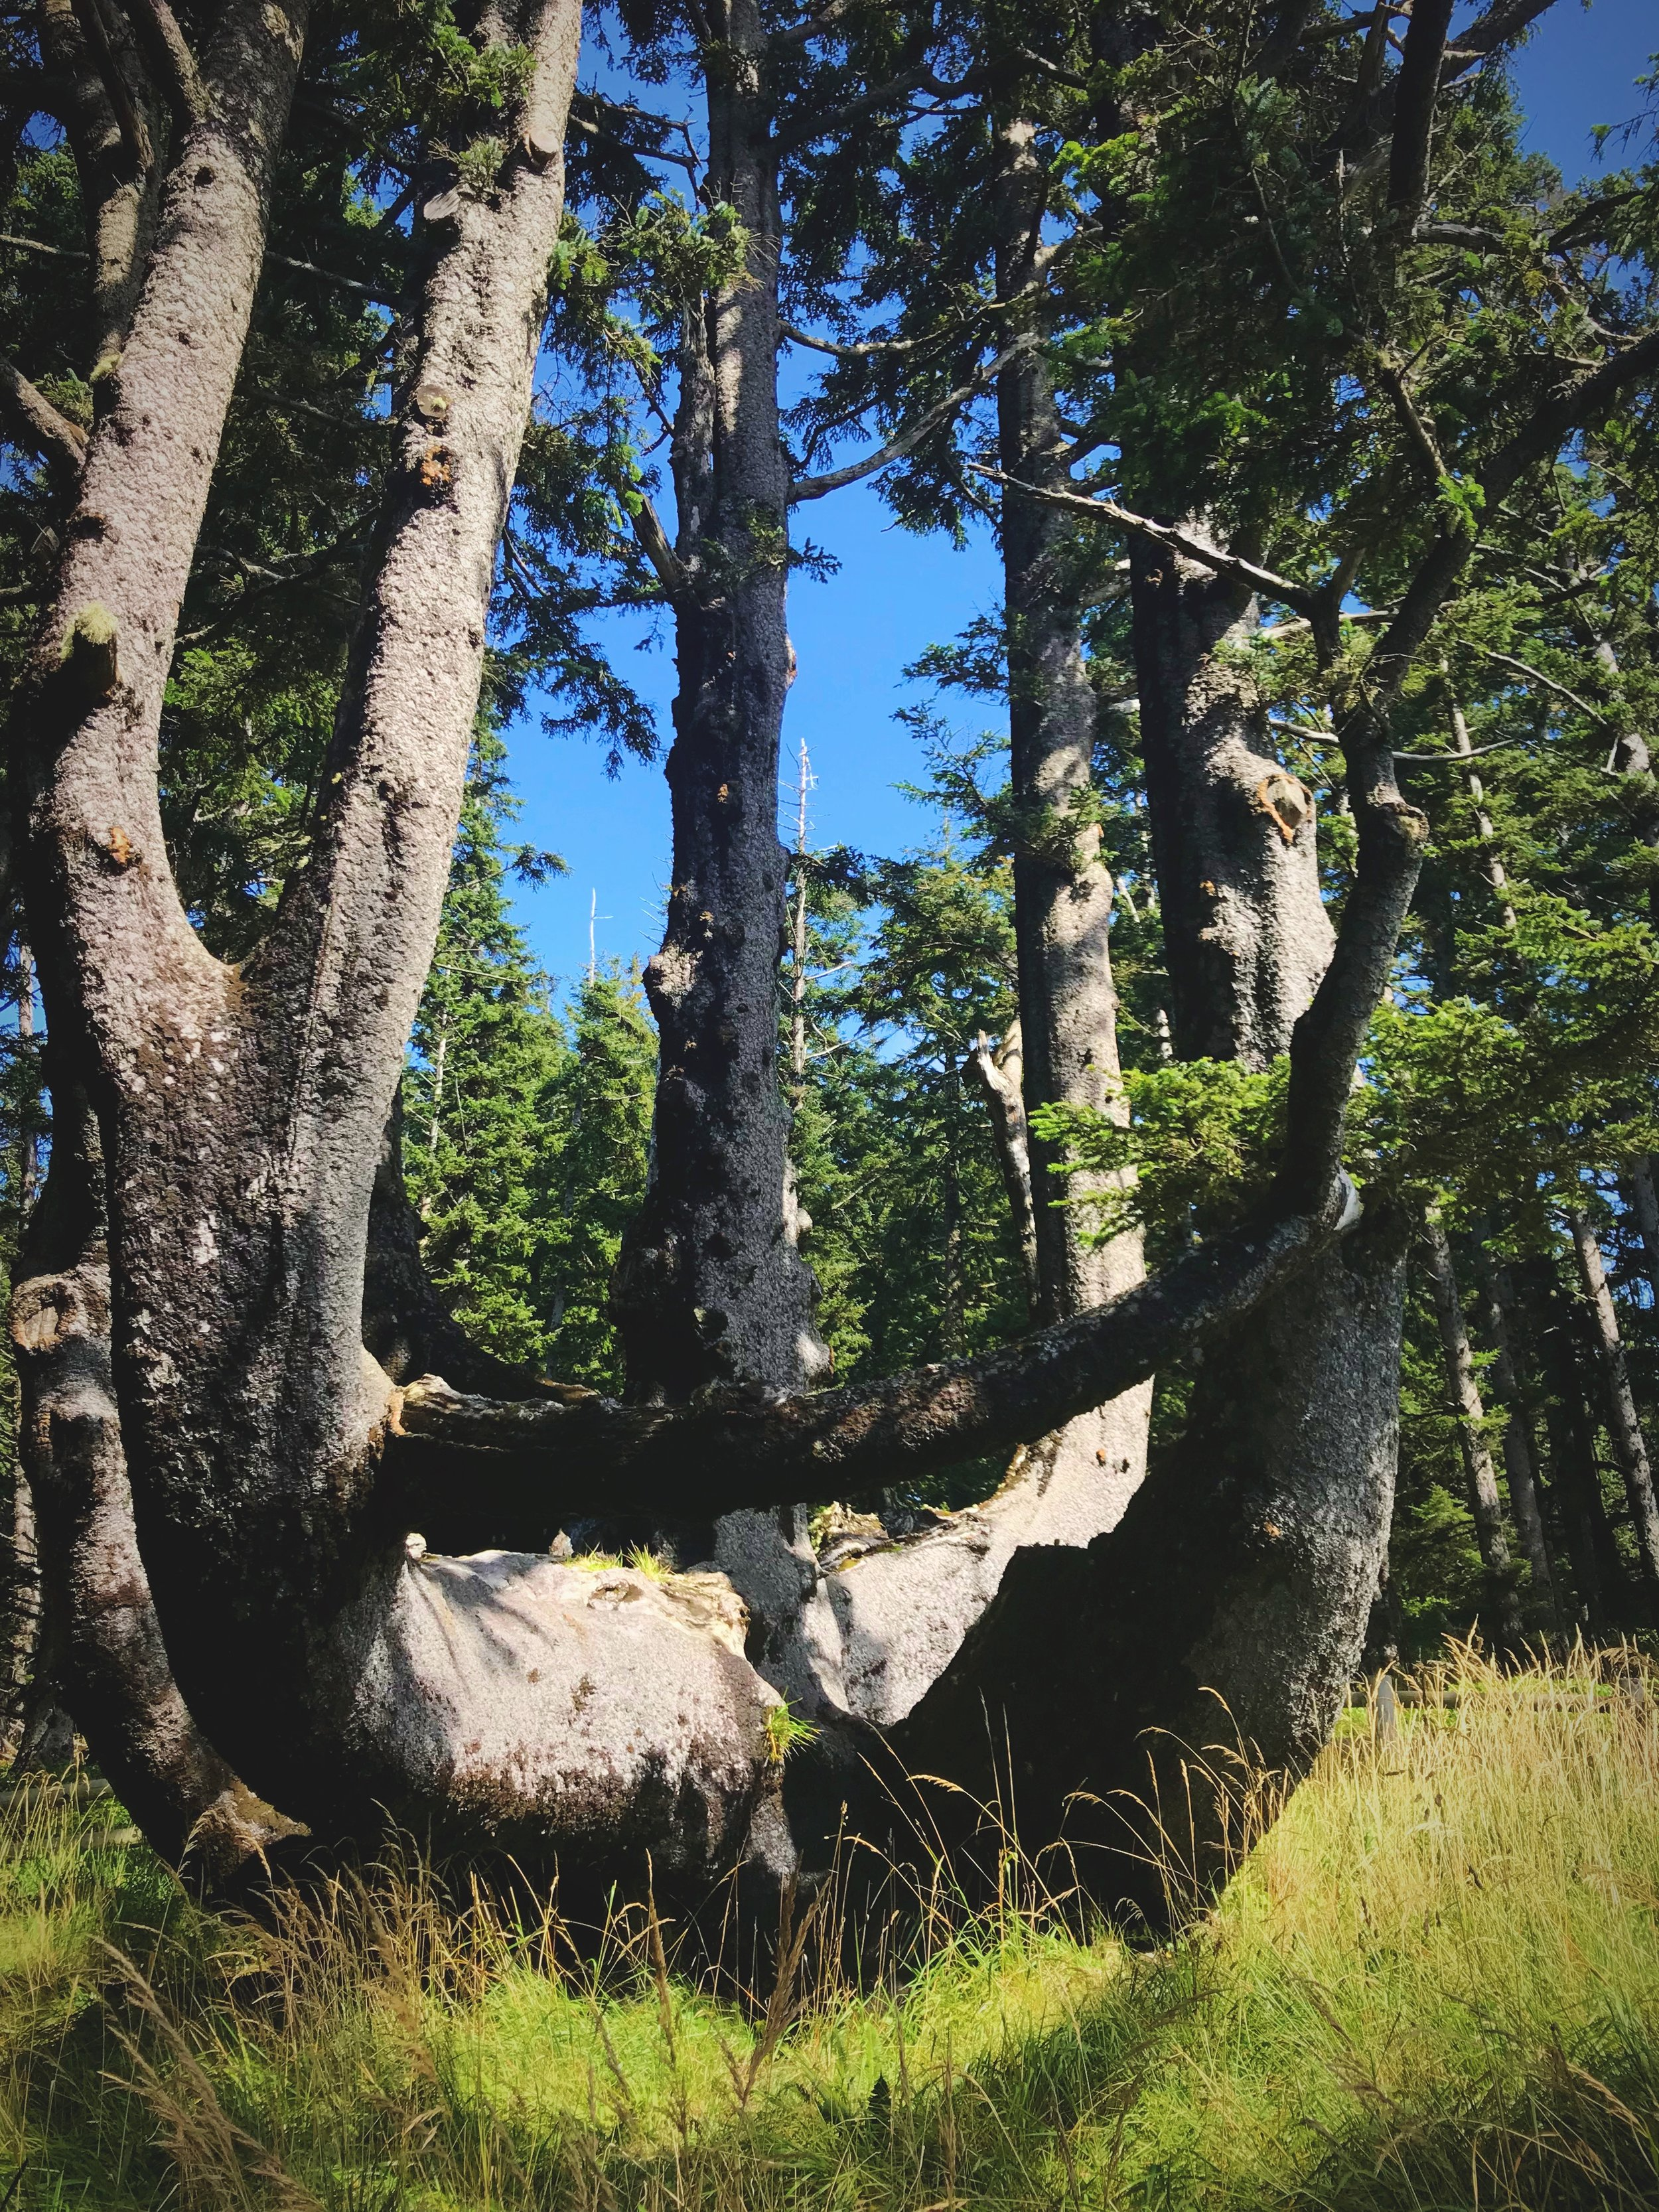 The Octopus Tree might not be massive or ancient, but it's really weird.